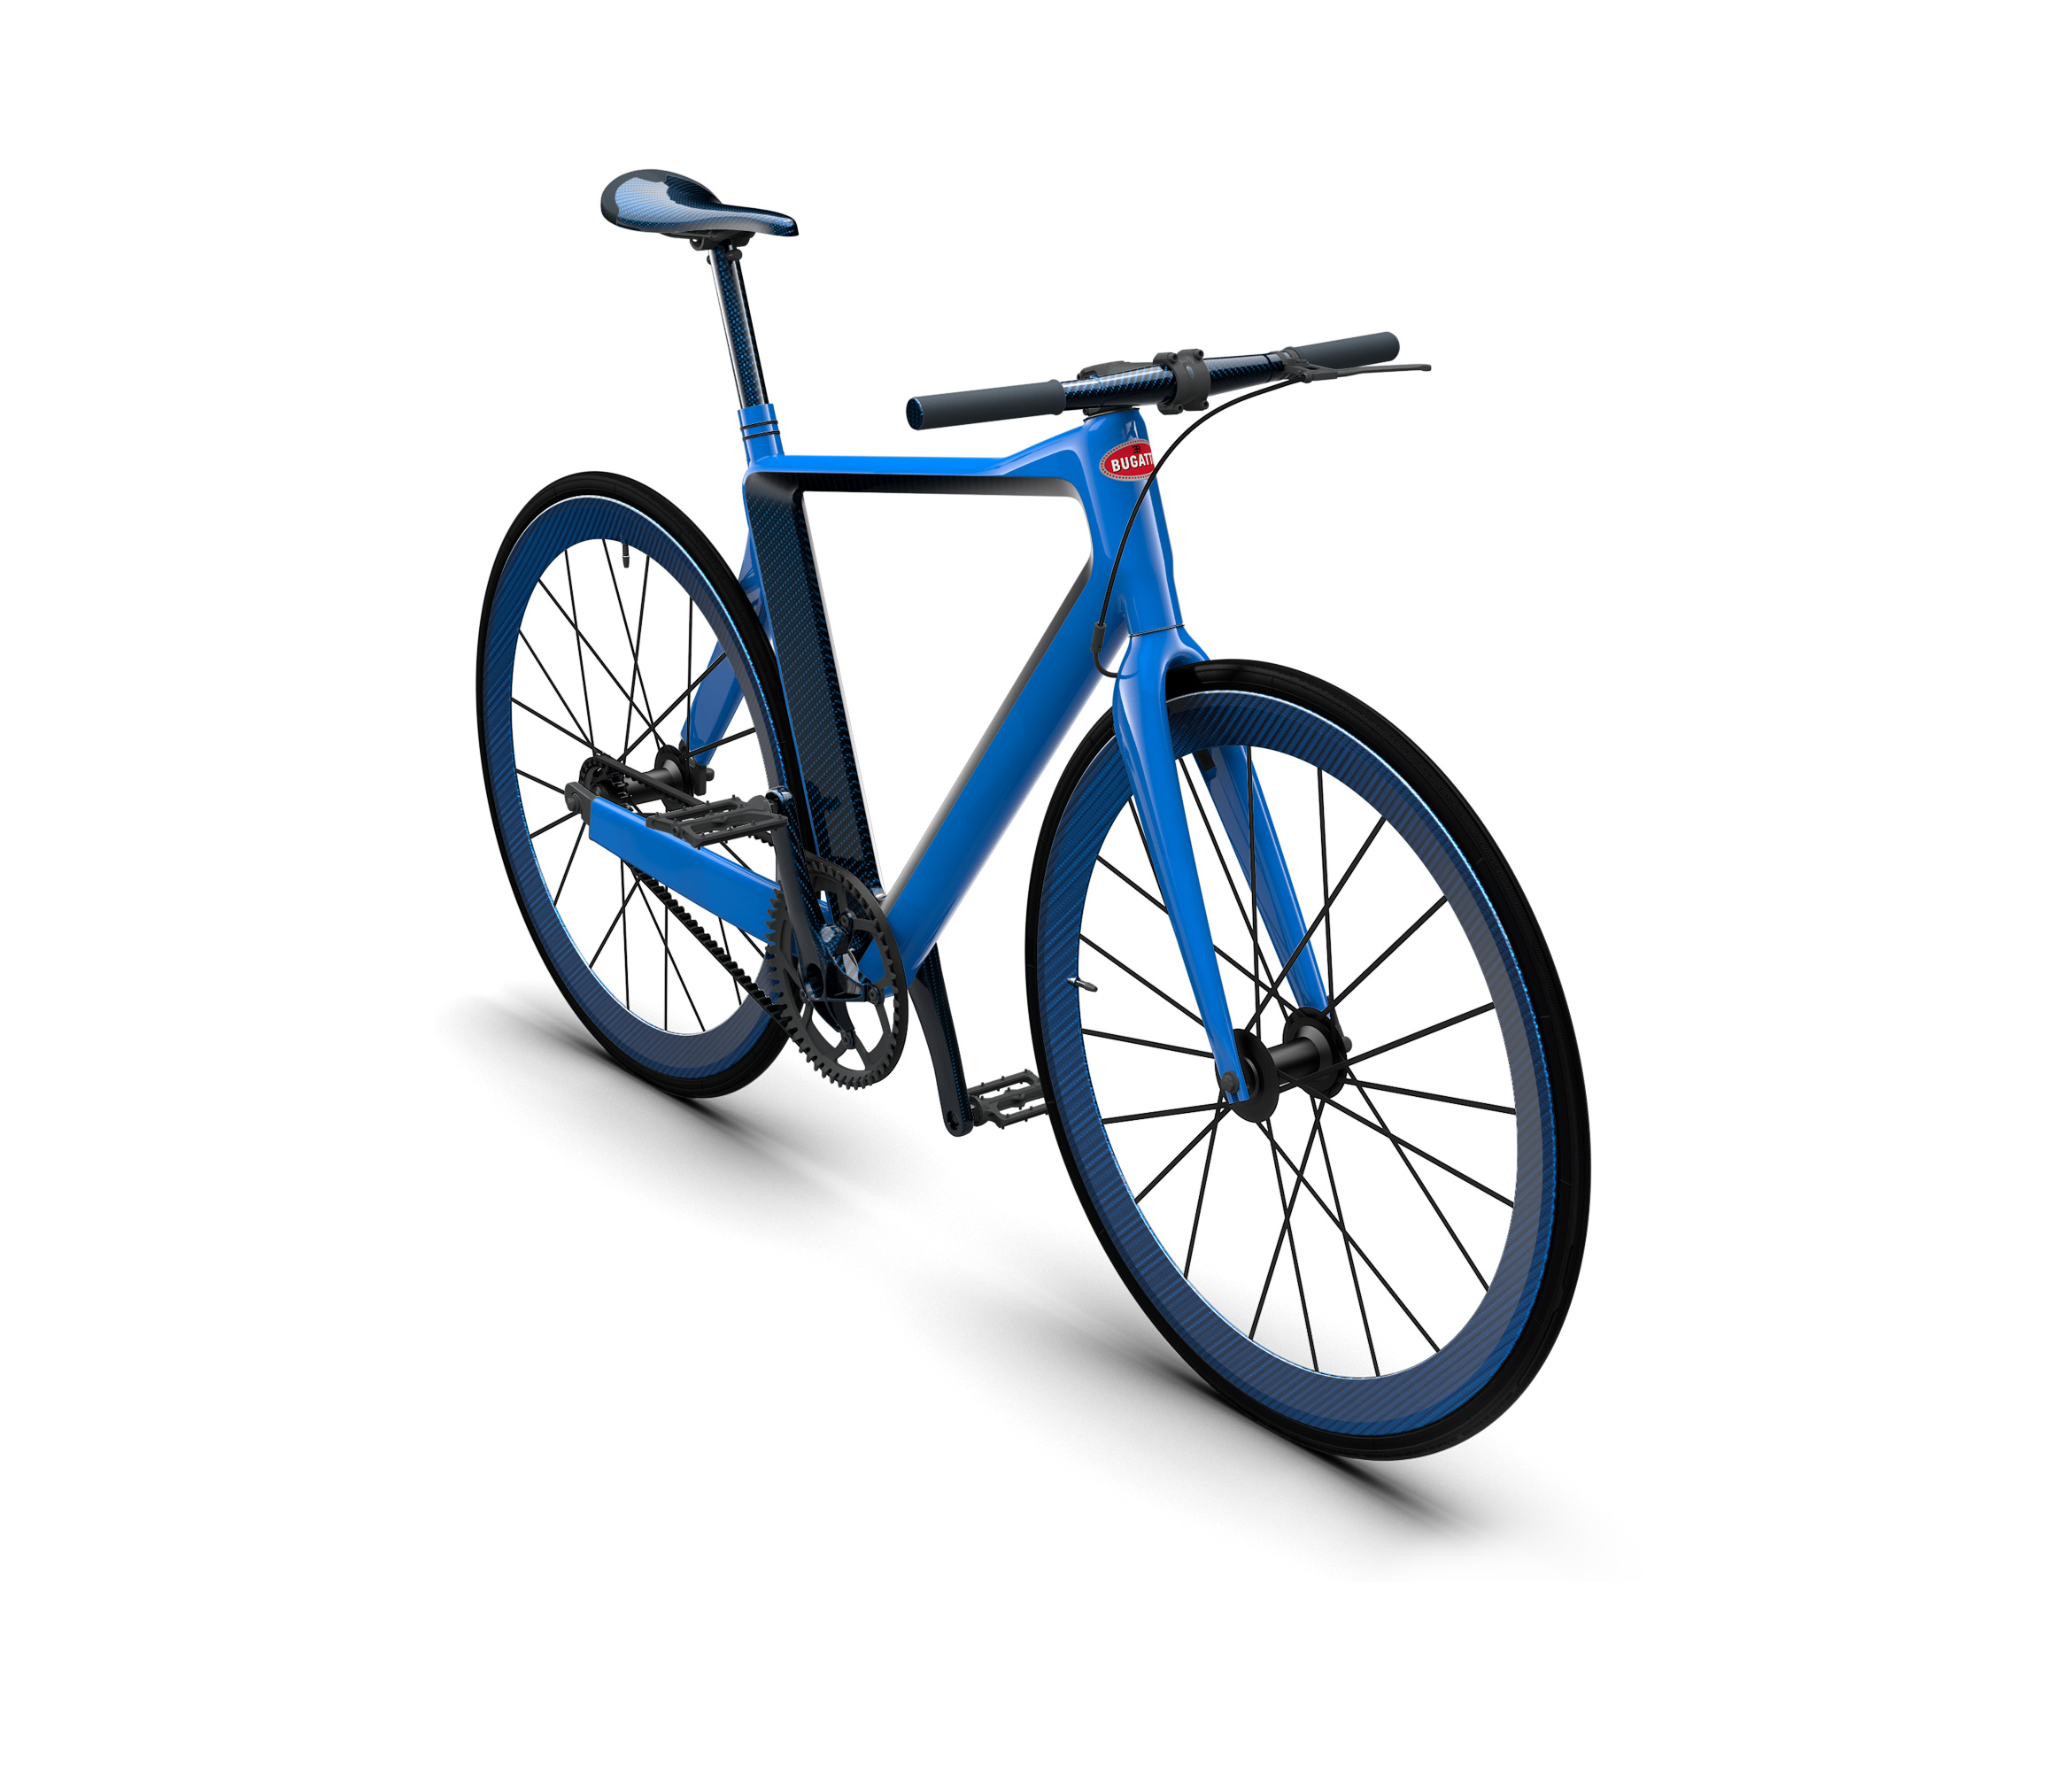 PG Bugatti bicycle (15)